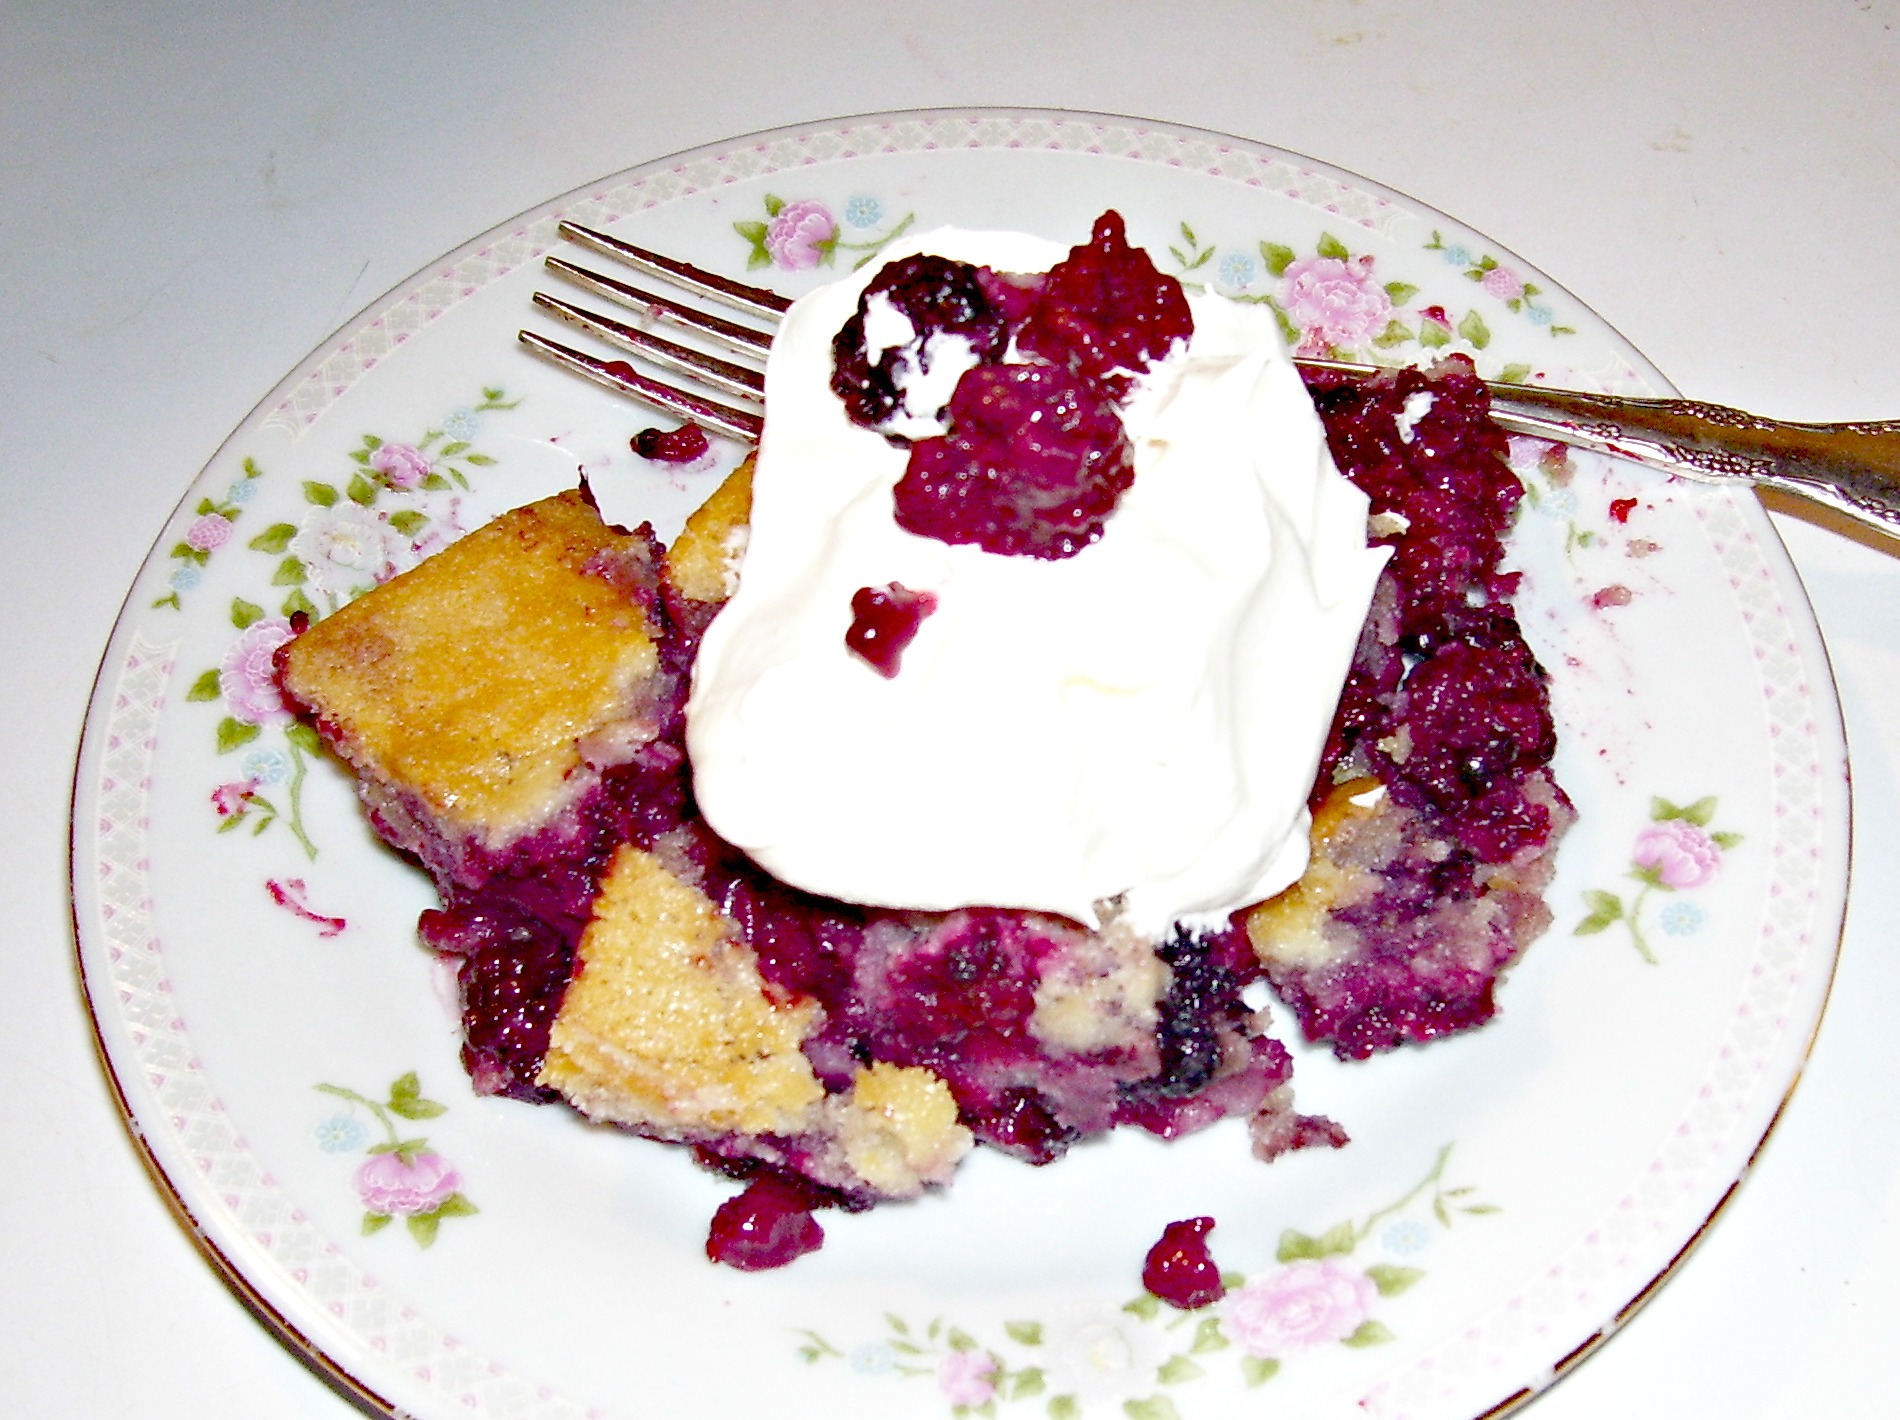 This Blackberry Cobbler Recipe brings back memories of blackberry picking. Share this recipe and your story.